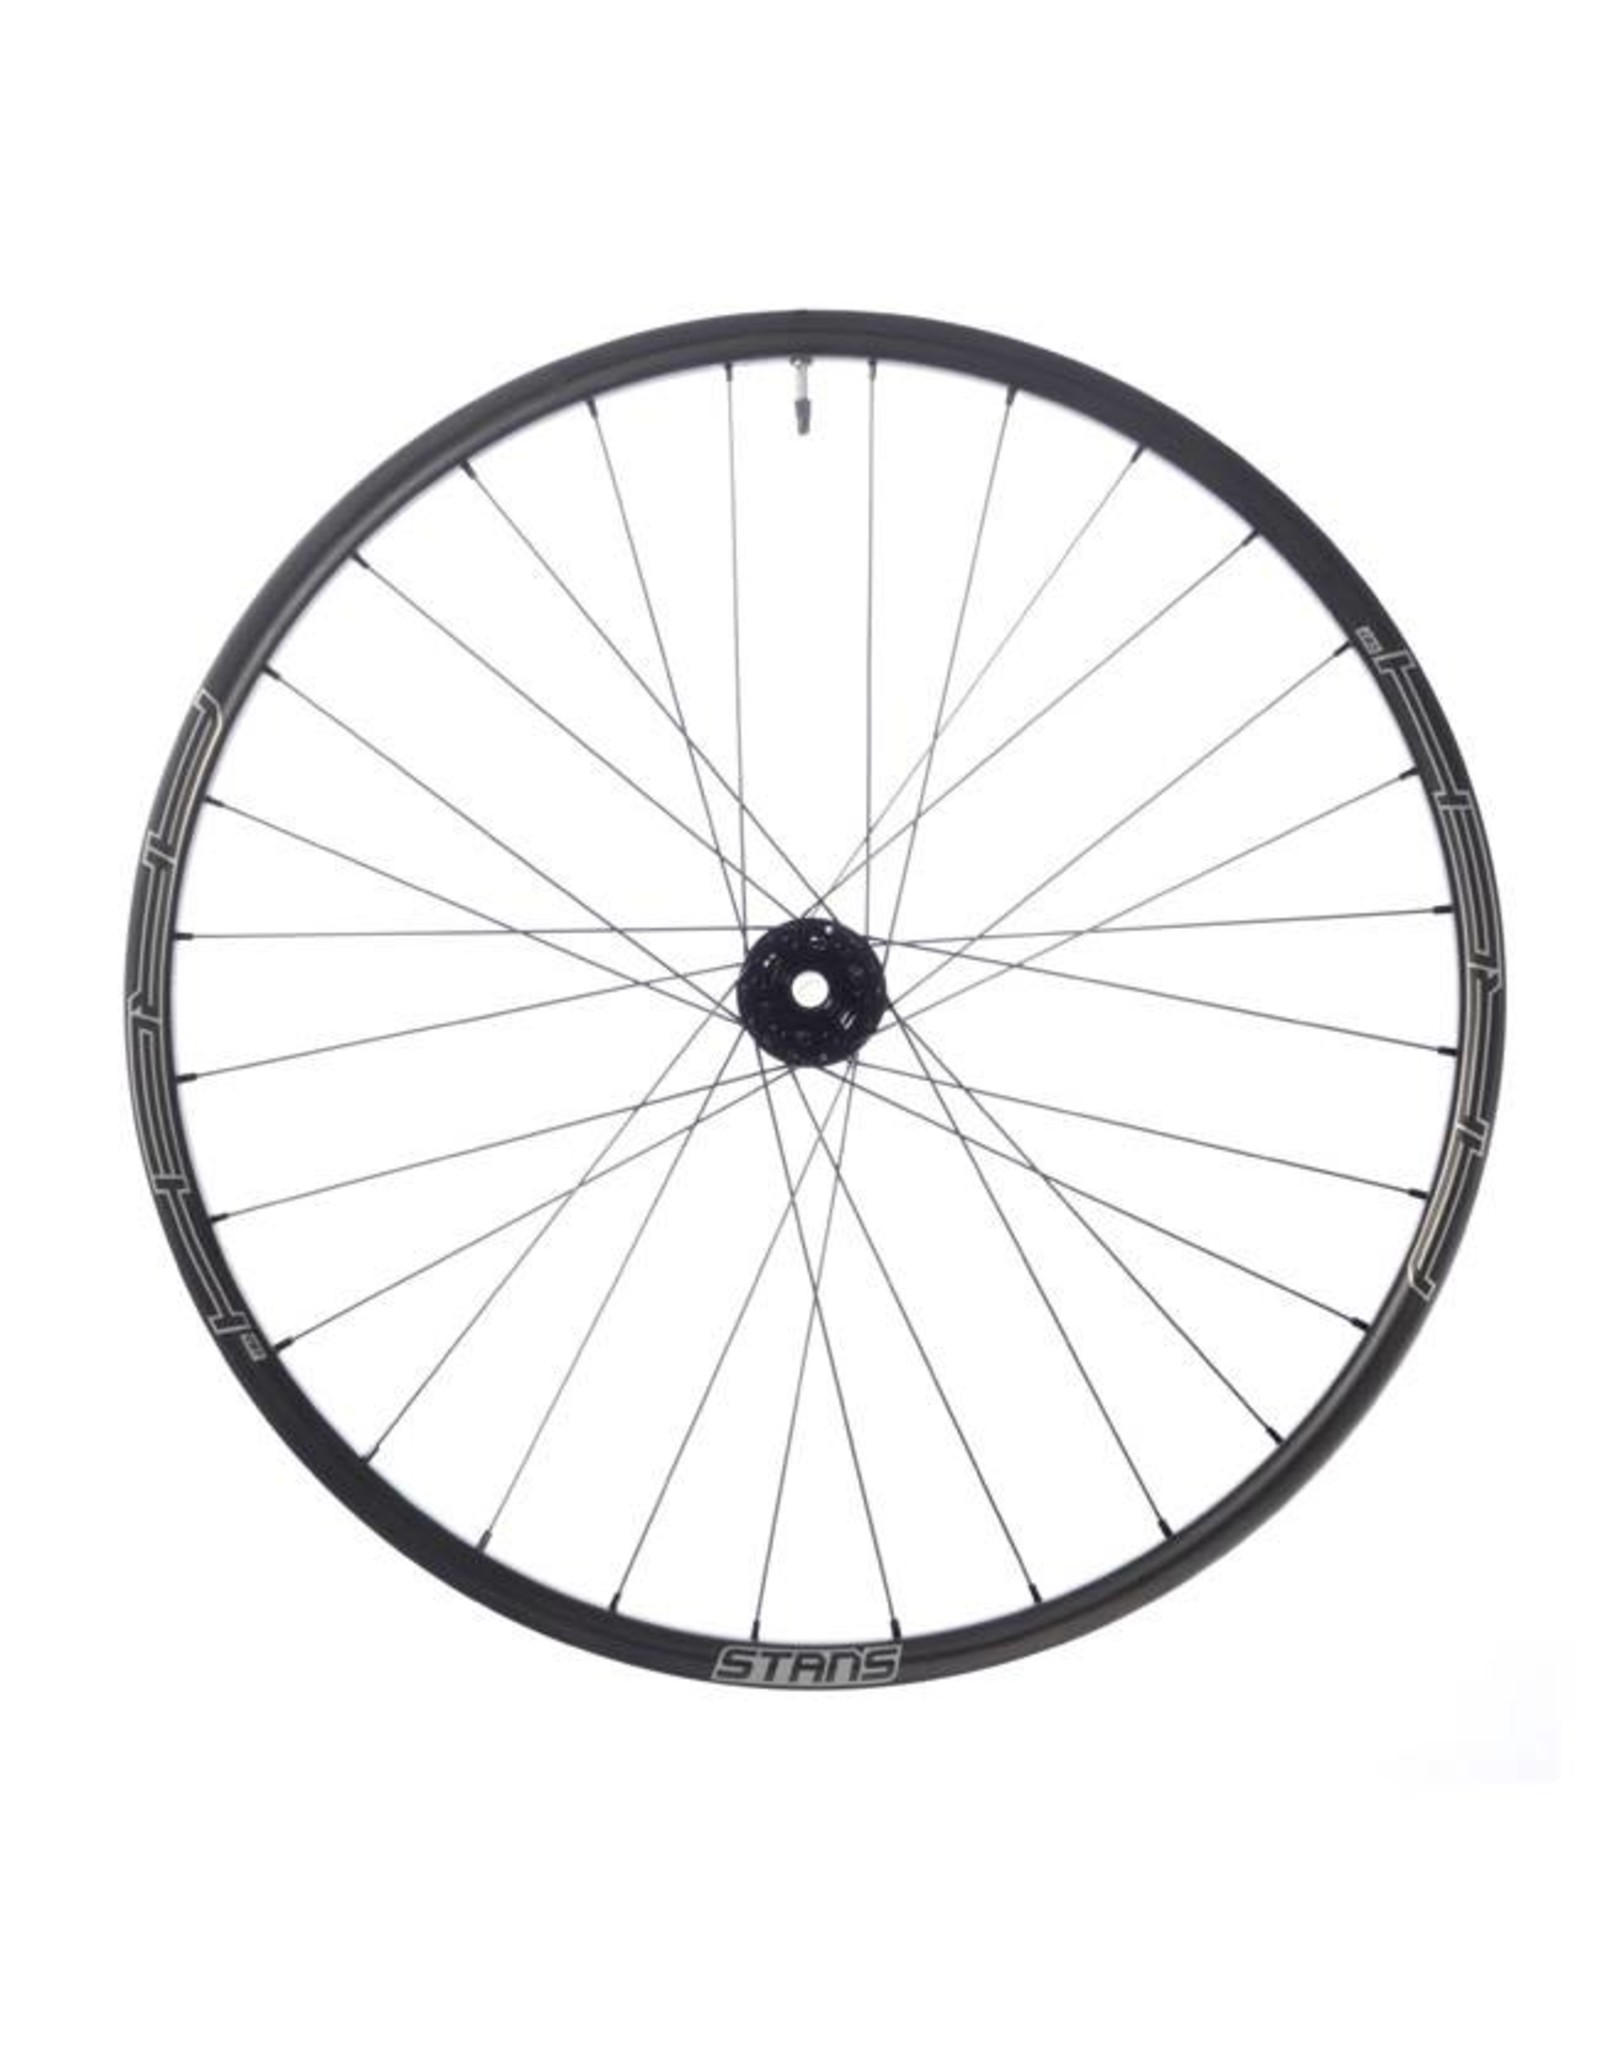 "Stan's No Tubes Stan's No Tubes Arch CB7 Rear Wheel: 29"" Carbon, 12 x 148mm Boost, 6- Bolt Disc, SRAM XD, Black"